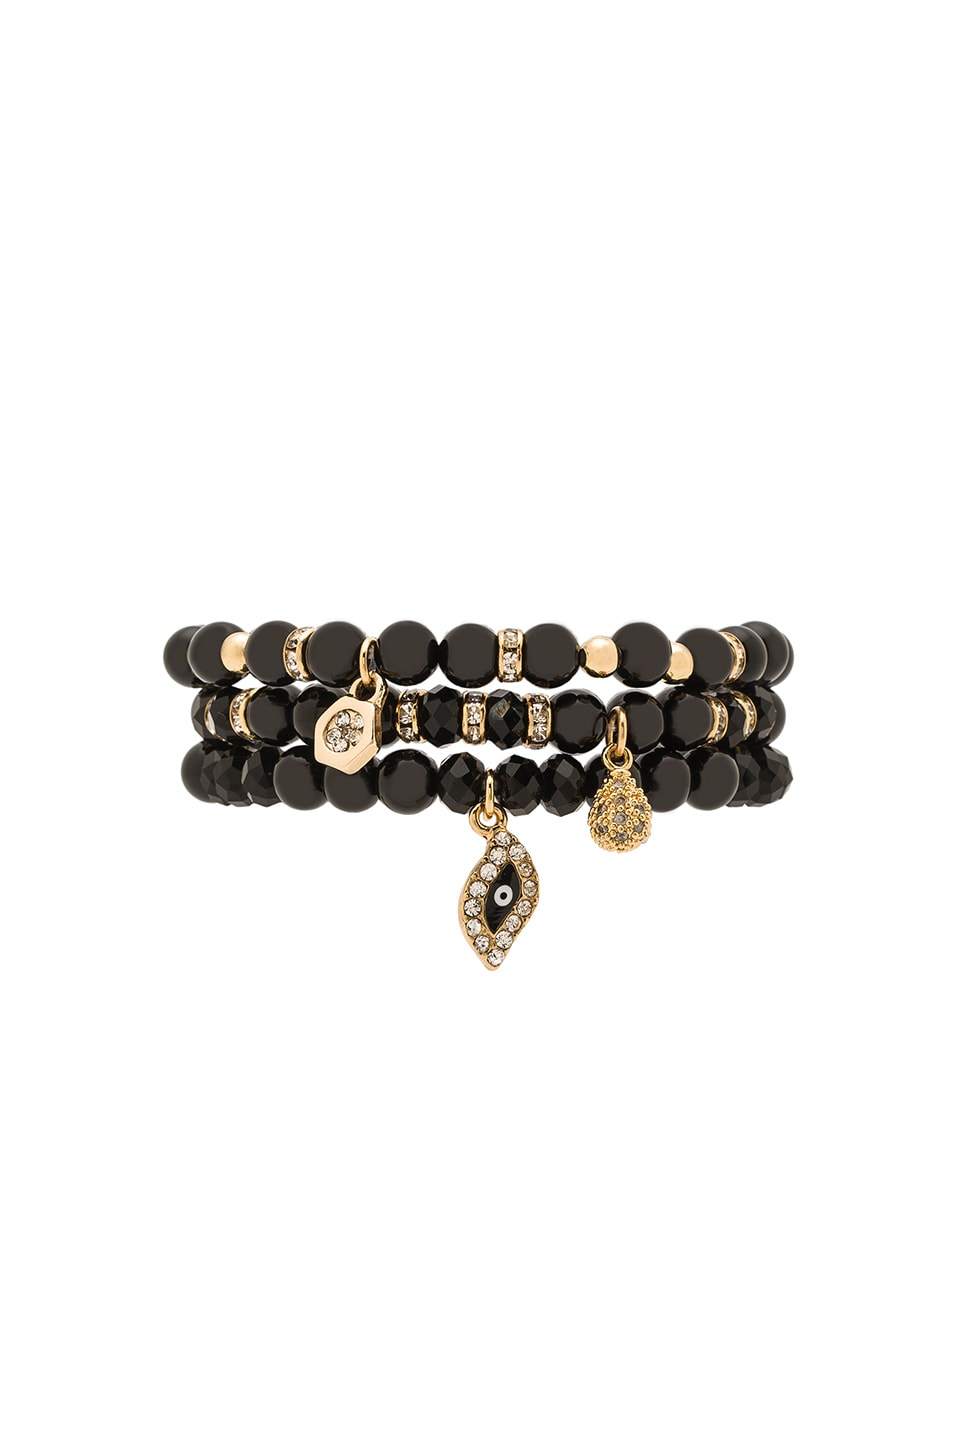 Ettika Set of 3 Bracelets in Black & Gold